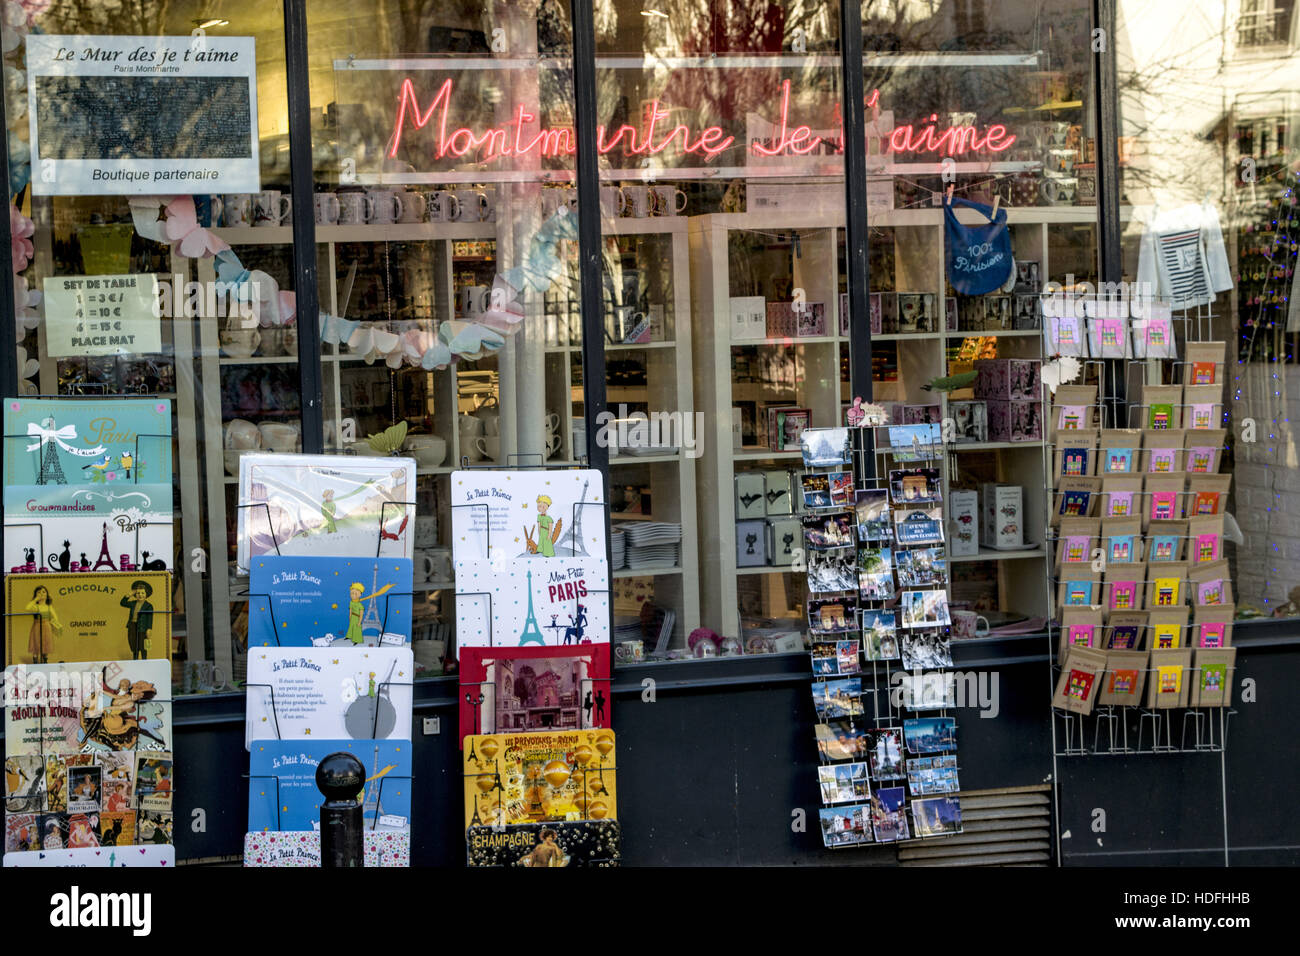 Postcards from Paris in Montmartre shop - Stock Image